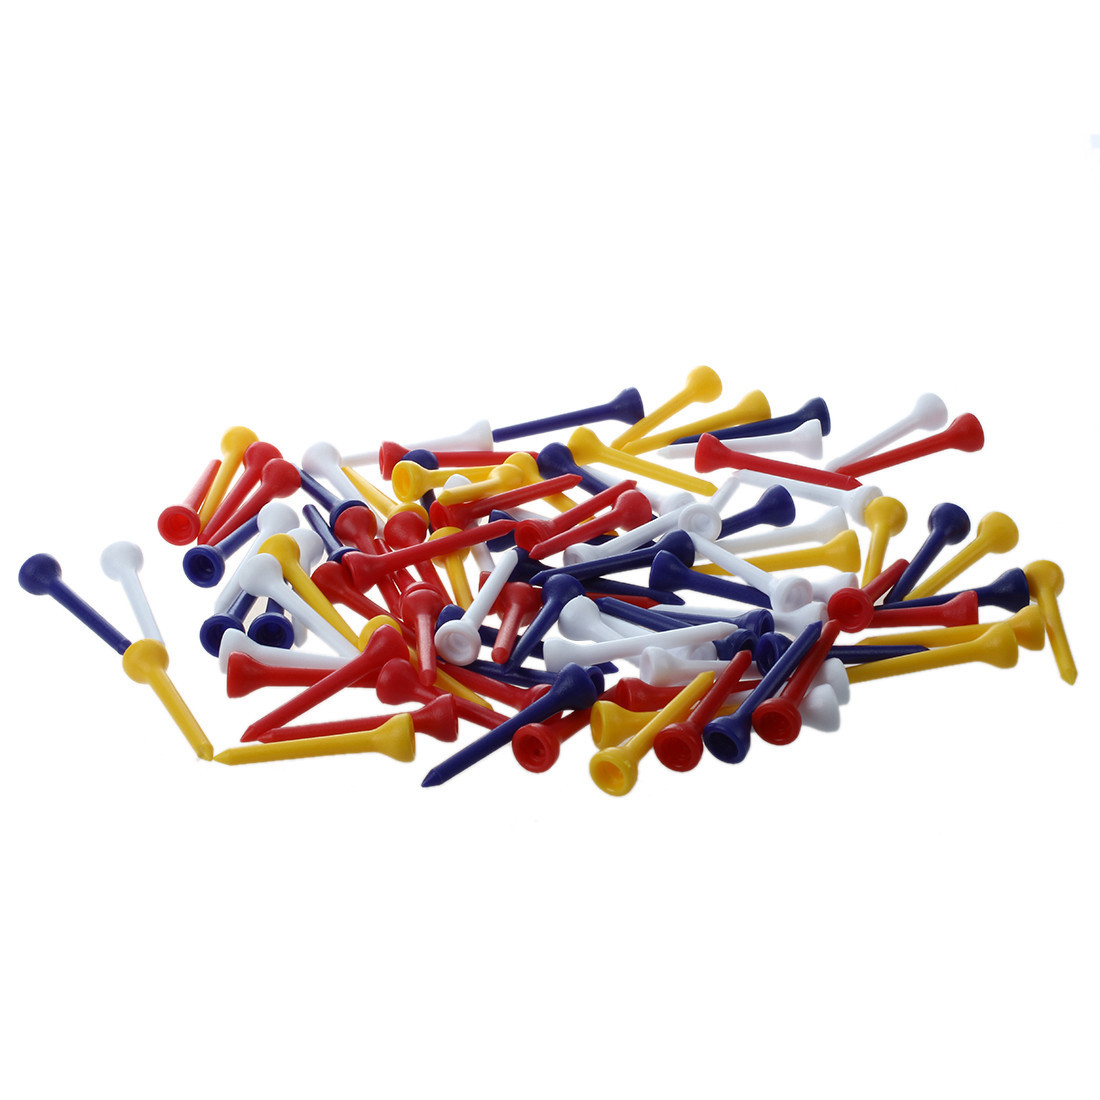 100pcs 49mm color mixed plastic Golf Tees